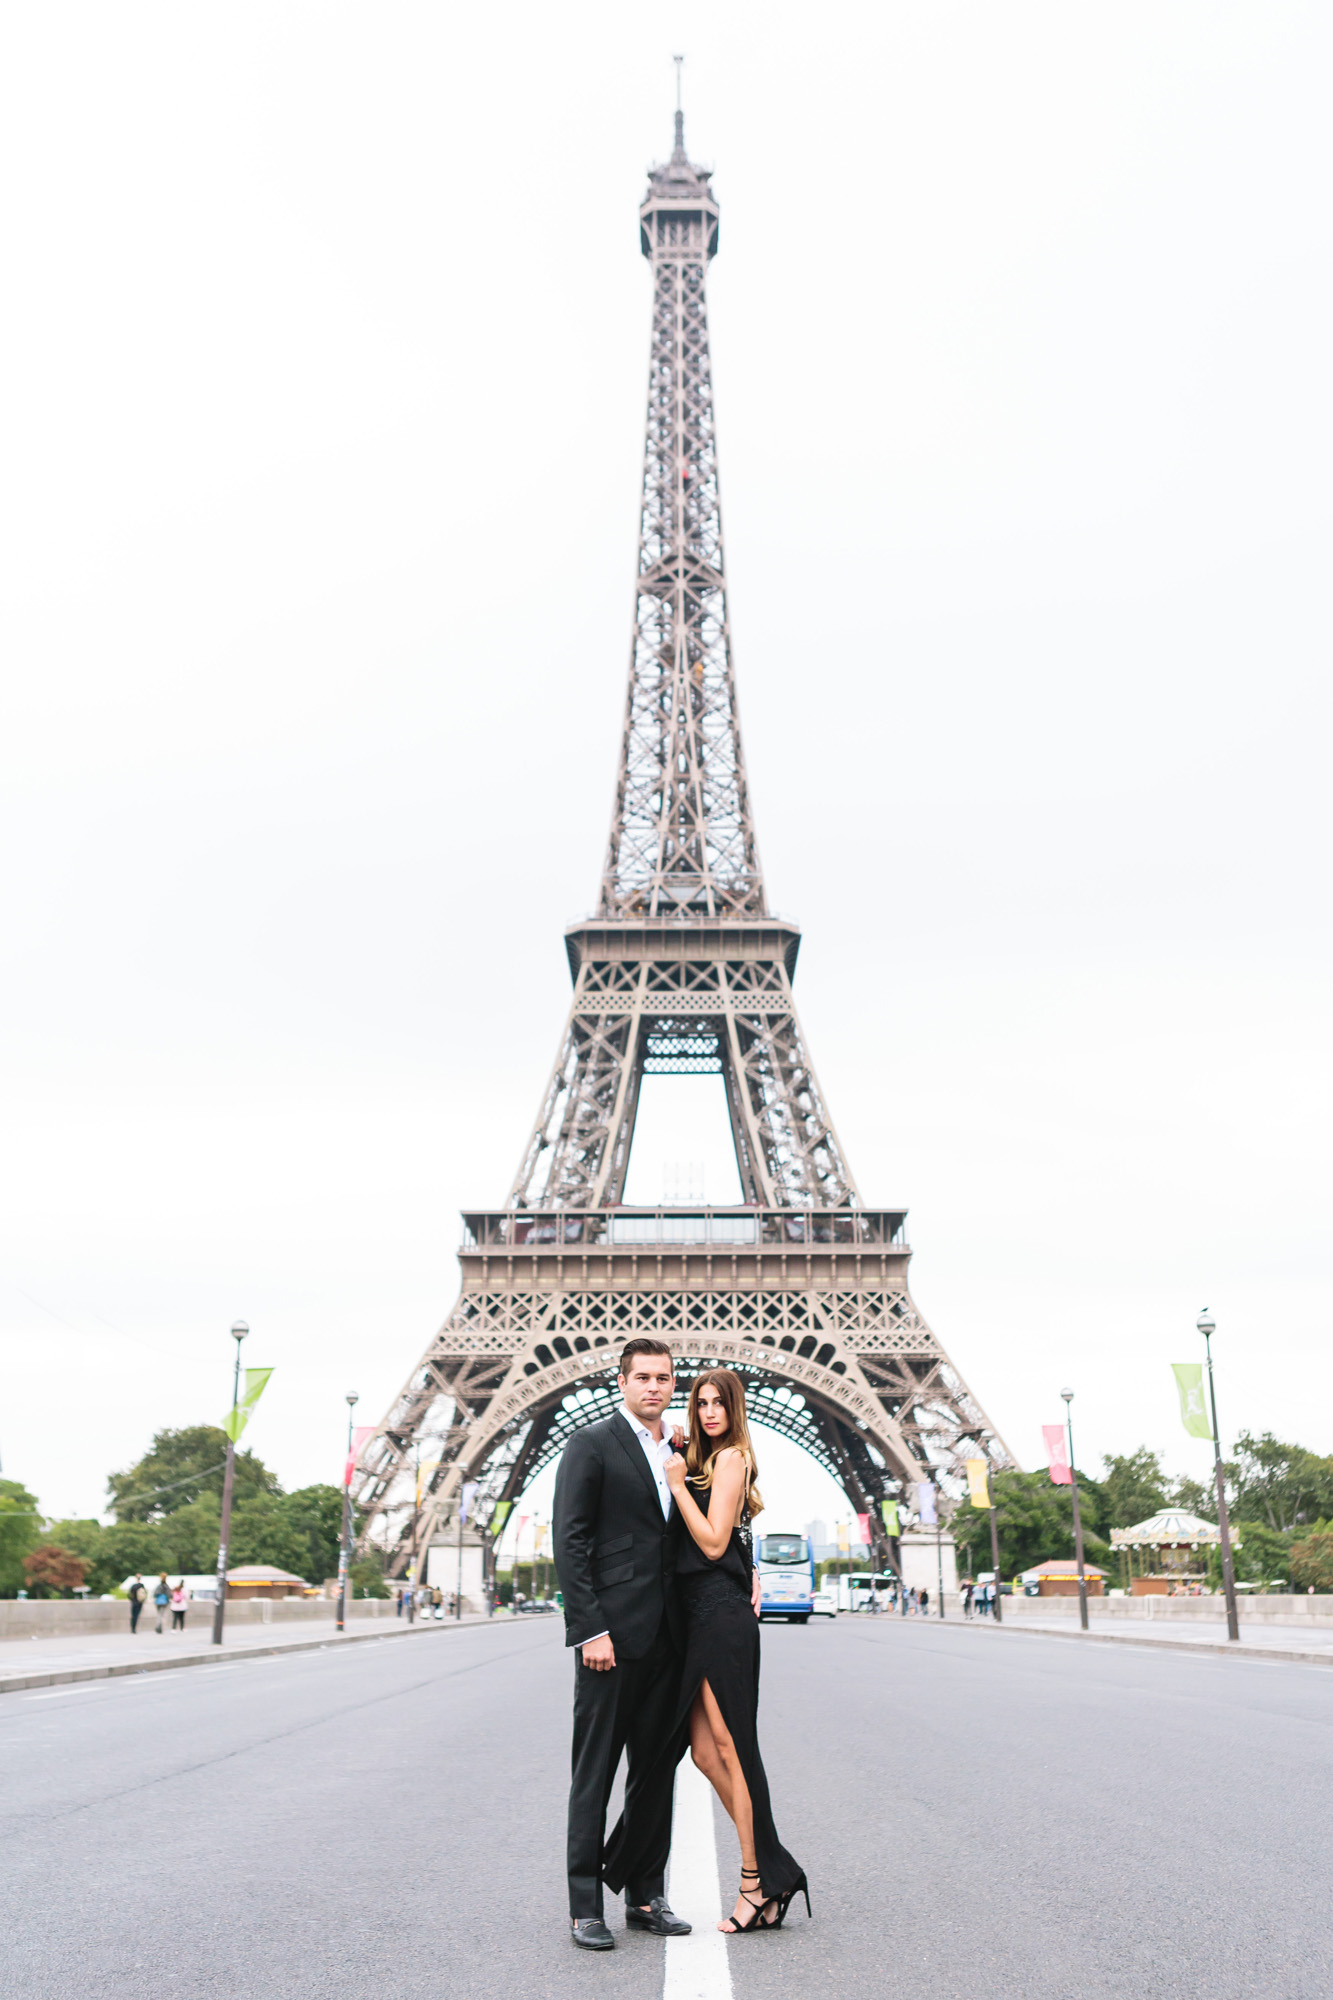 Paris Photographer Couple Sesssion Travel Lovestory Eiffel Tower Pont Iena IheartParisfr